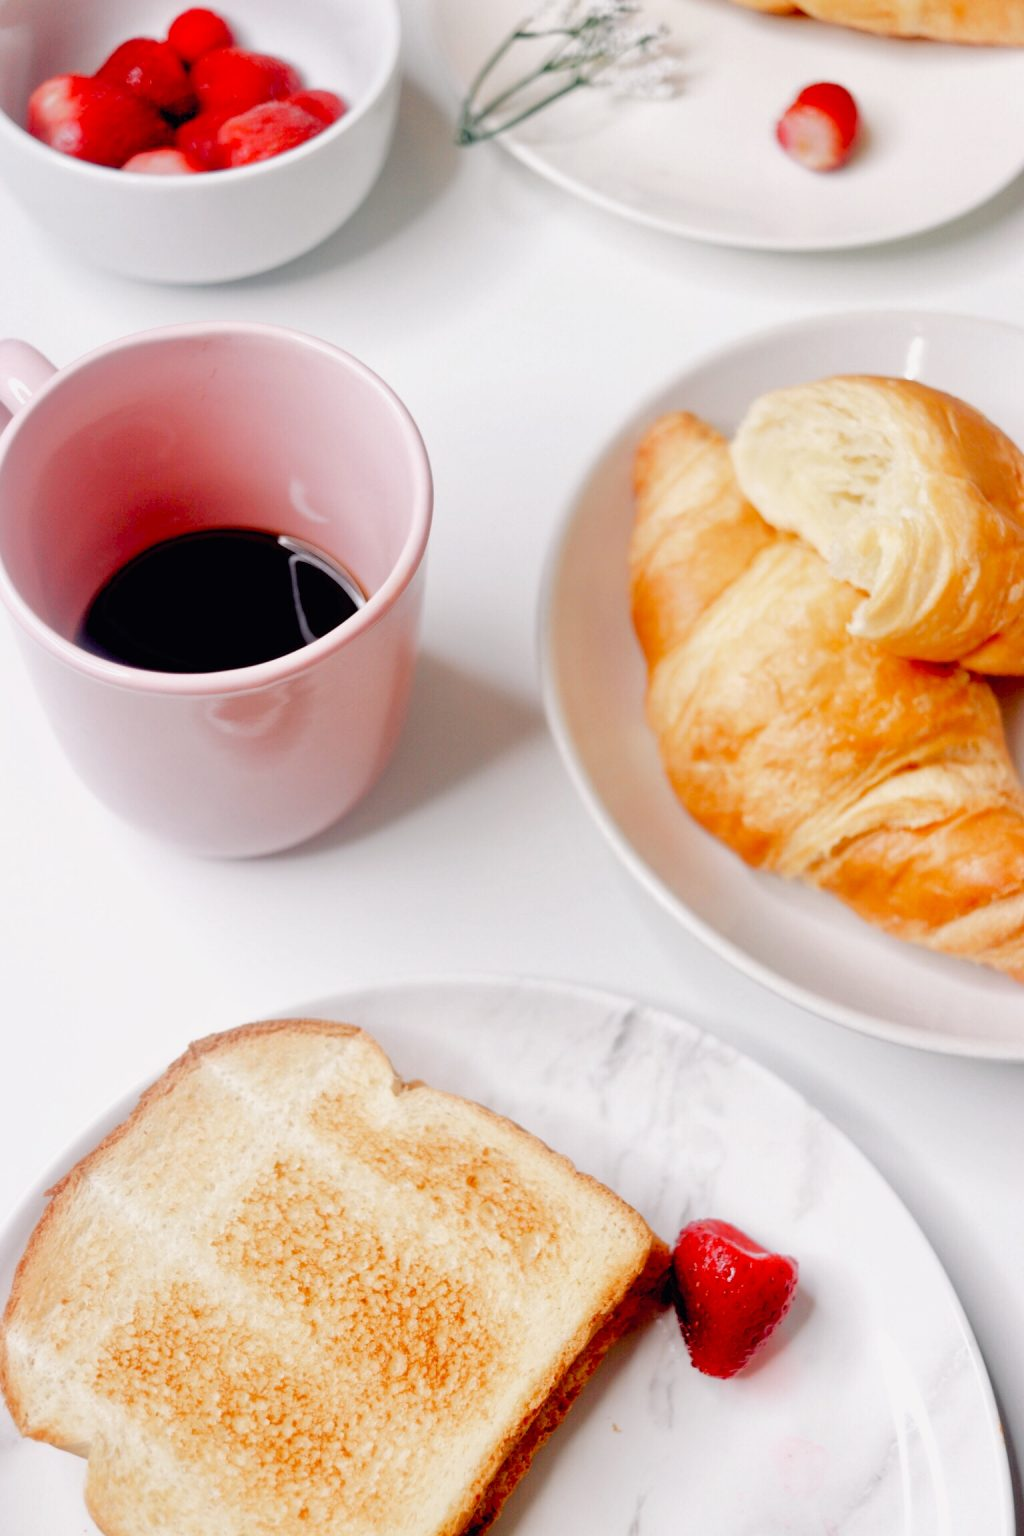 breakfast food 1jpg 1024x1536 - Let's Chat: My Breakfast Morning Meal And Relaxing Time